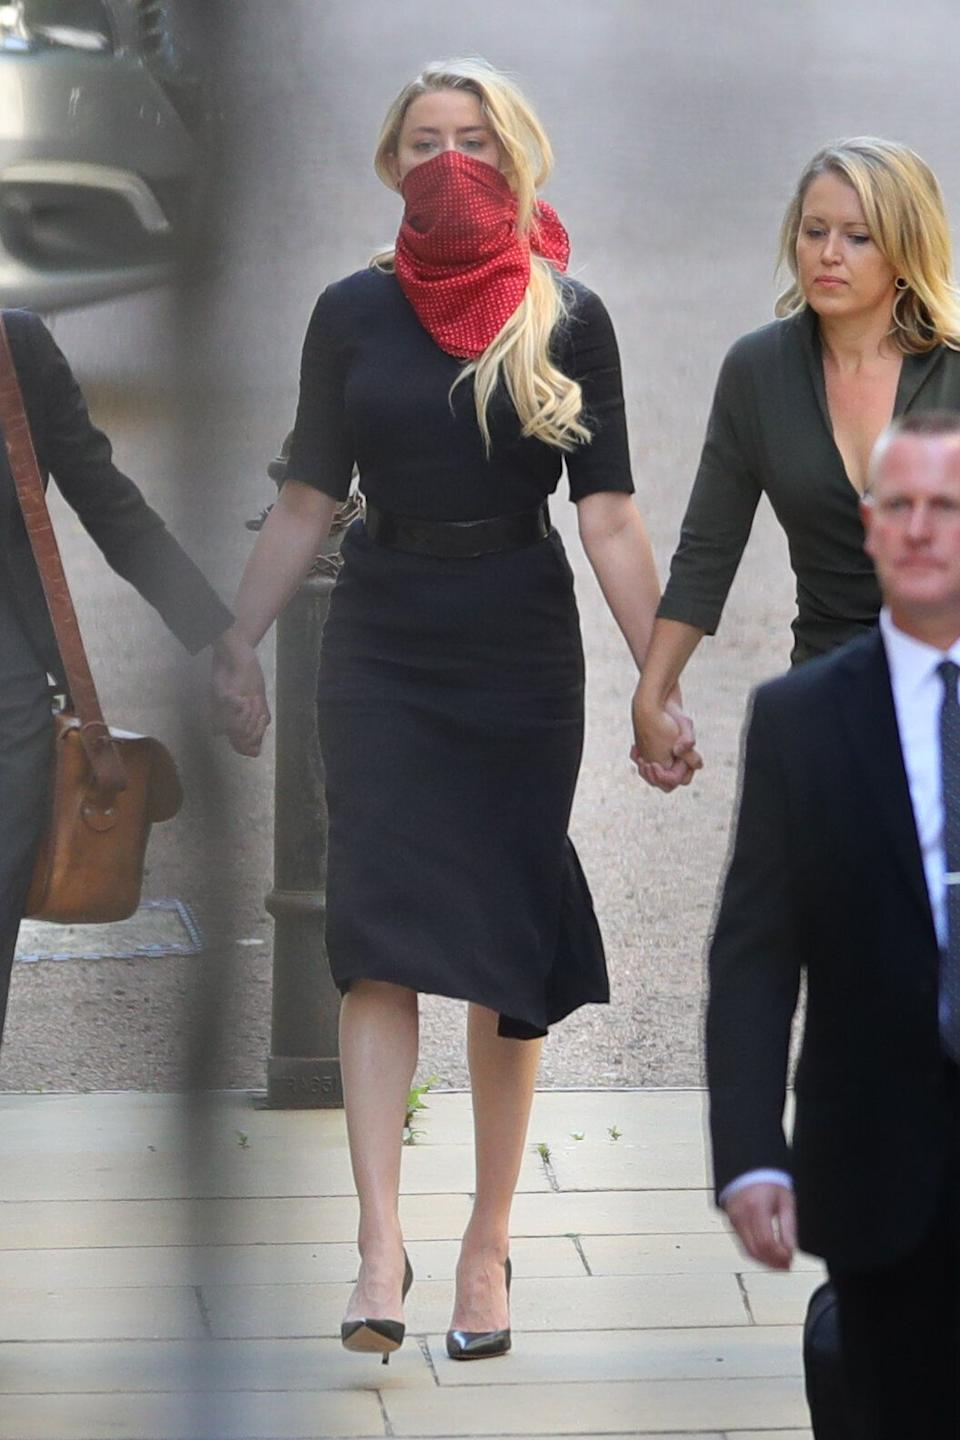 Amber Heard arriving in court on Tuesday (Photo: PA)